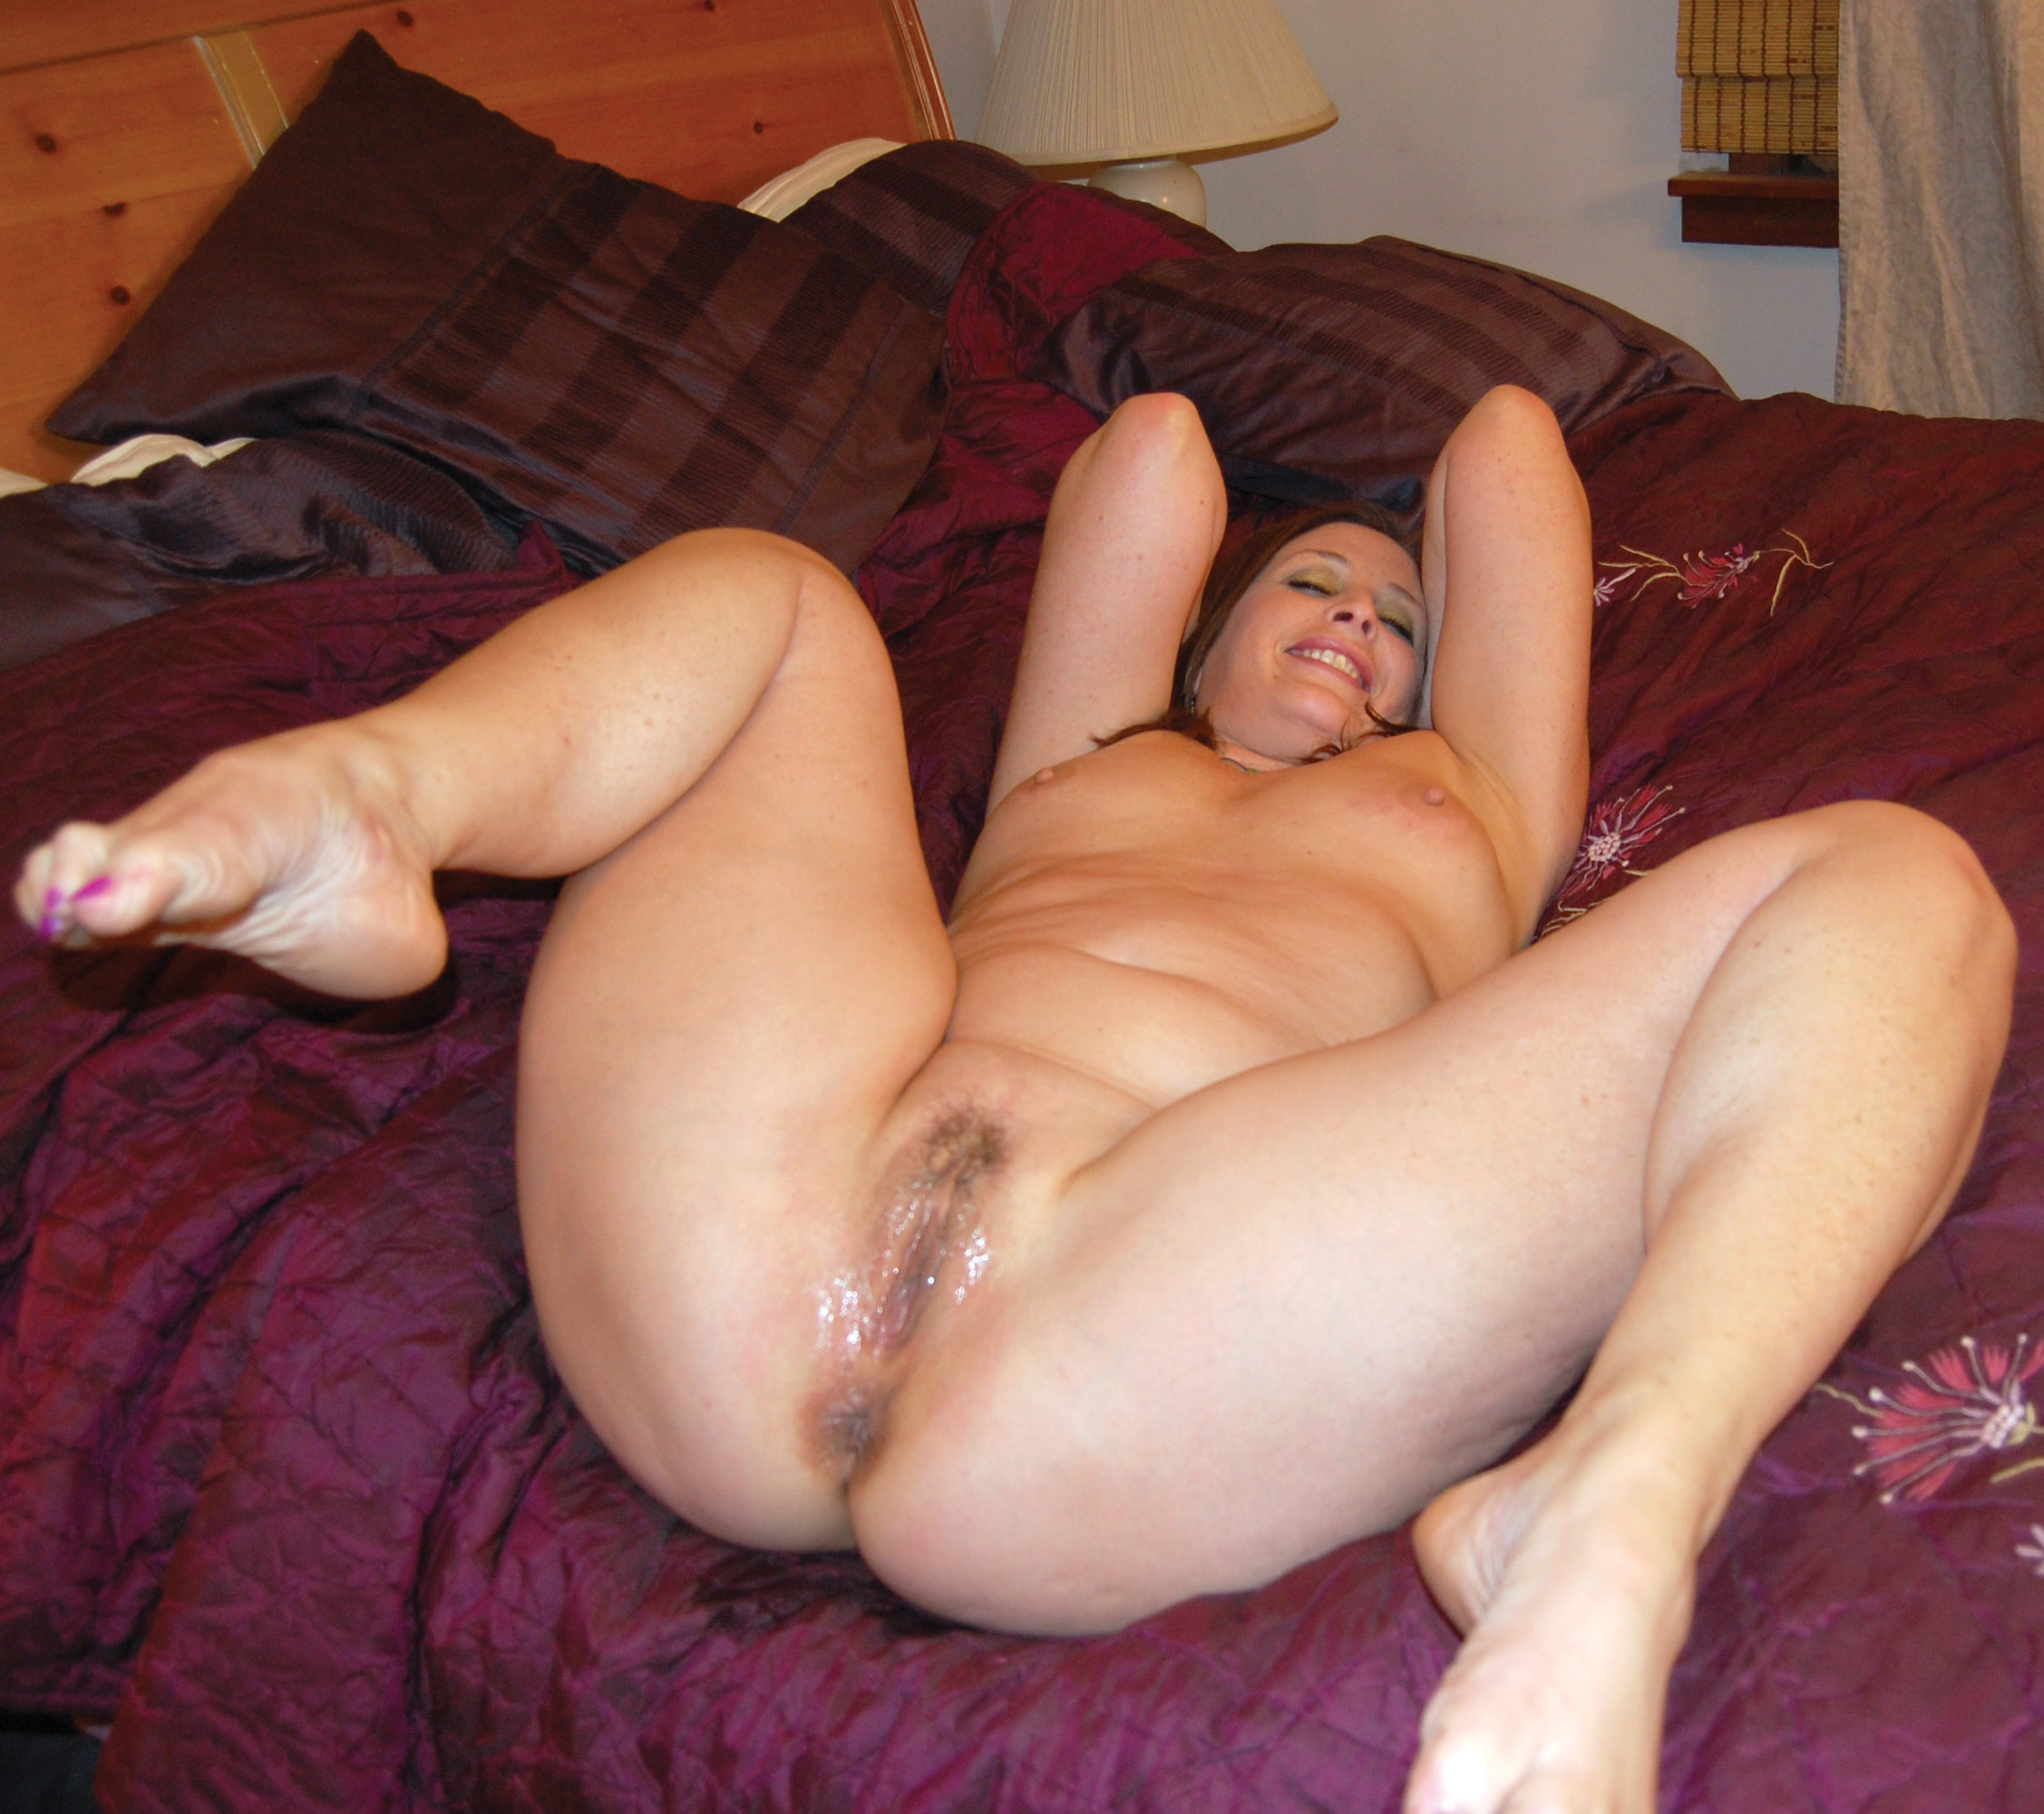 we ve got more creampie cuties like this one visit homegrown creampies ...